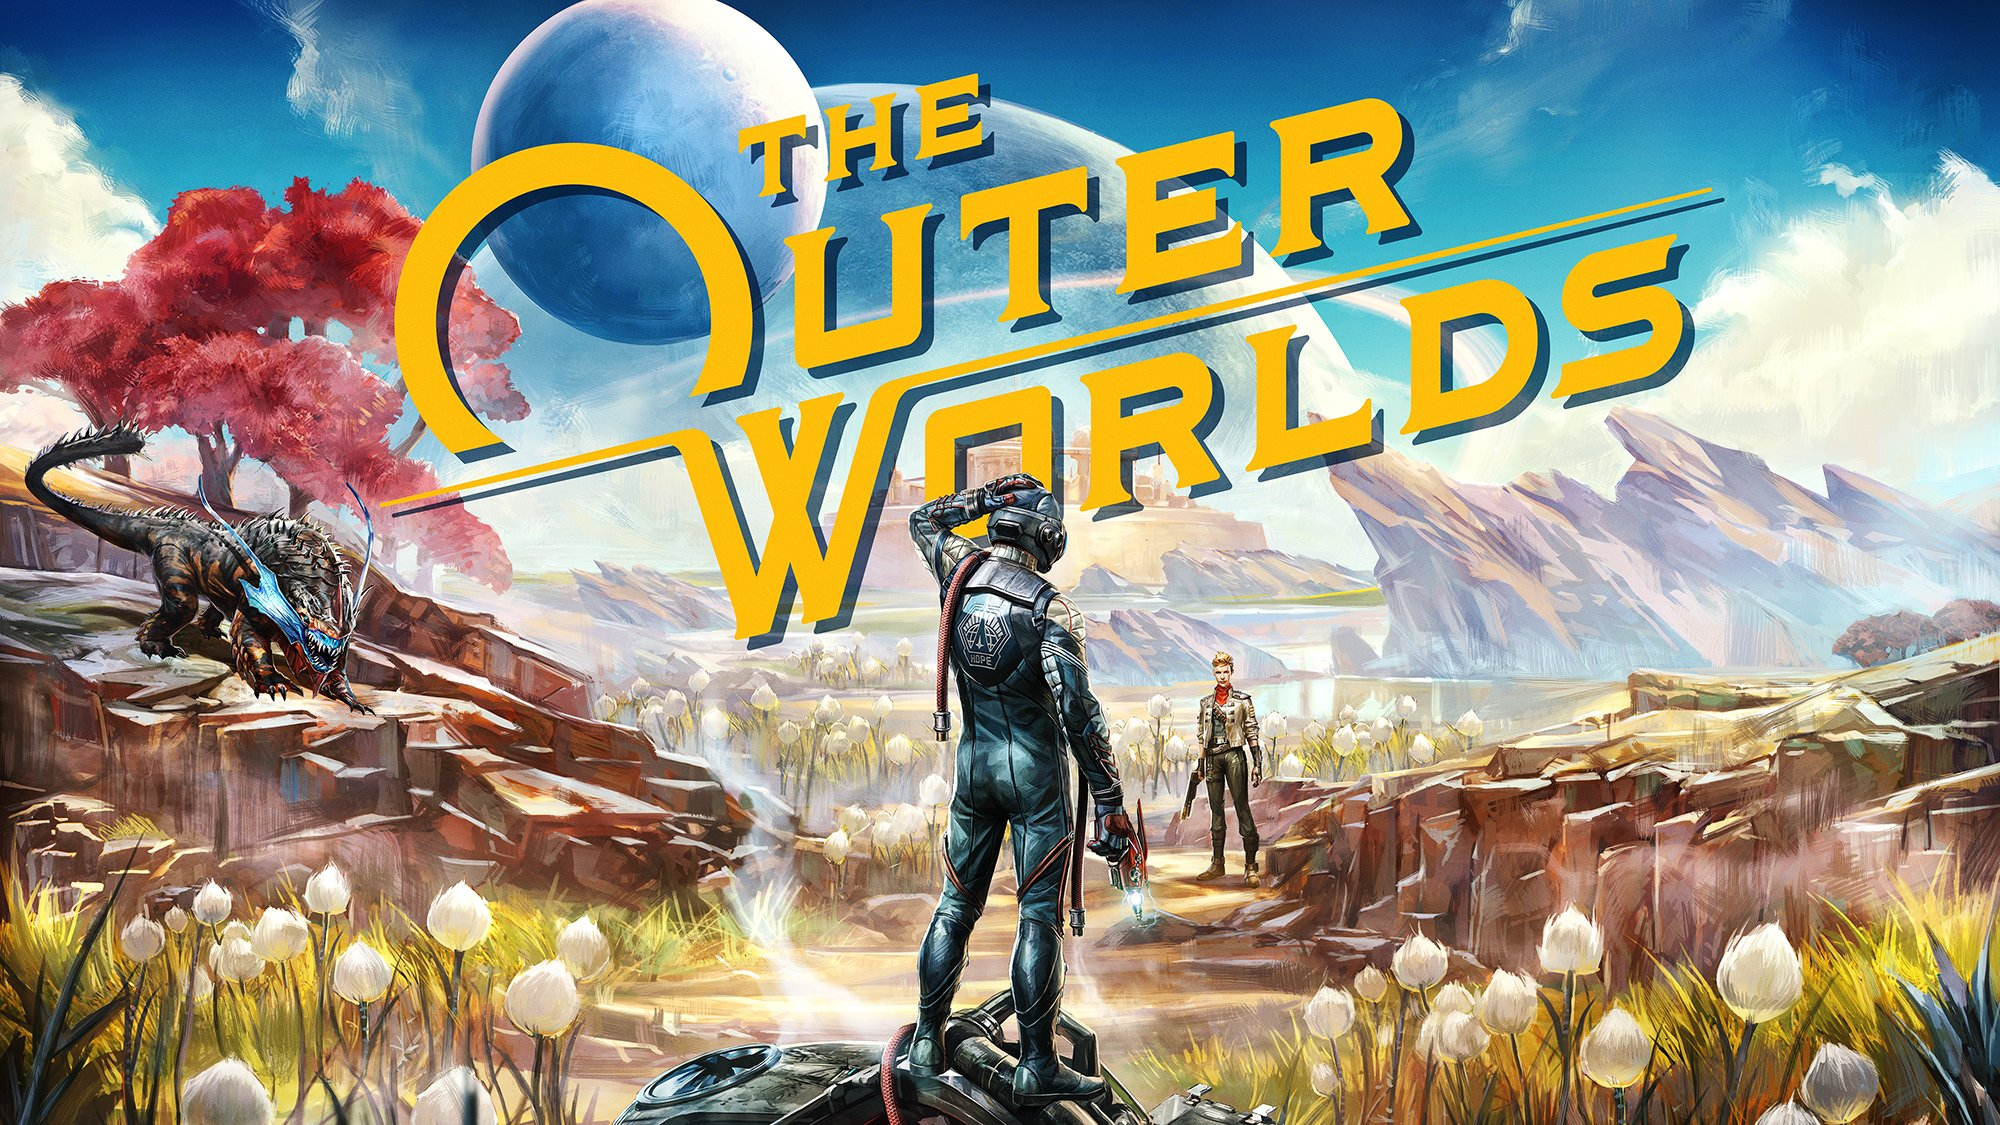 La version Switch de The Outer Worlds trouve une date de sortie